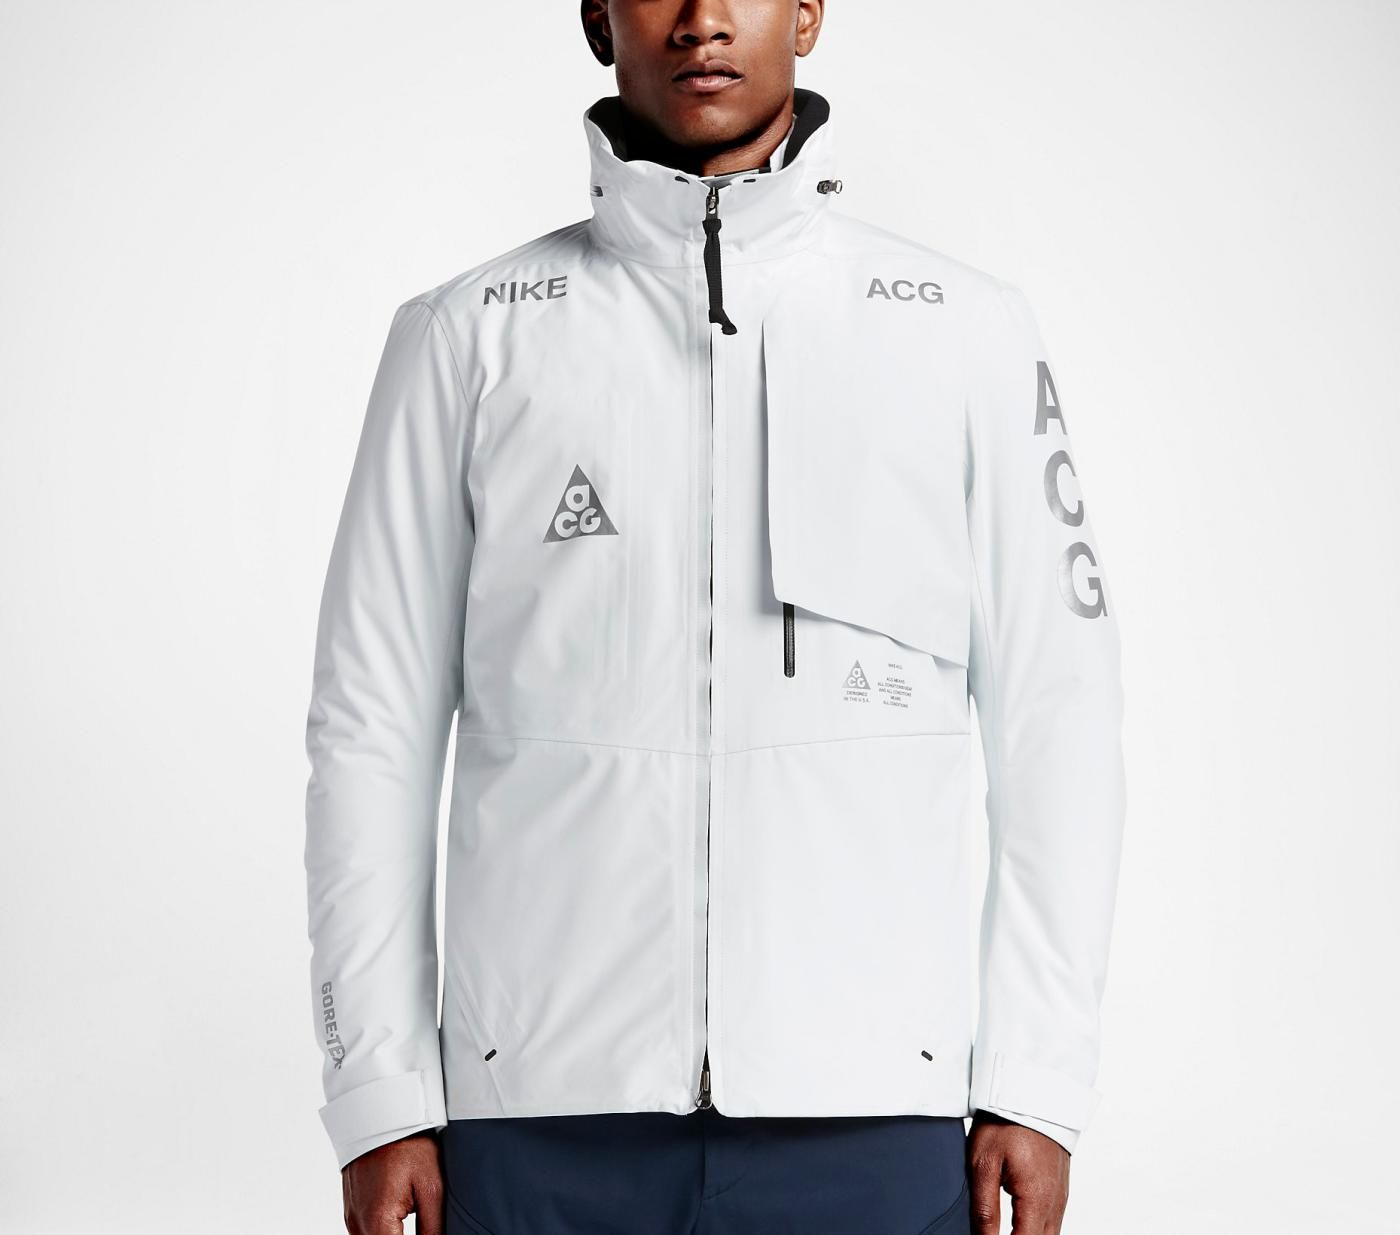 28d601e11b4d NikeLab ACG 2-in-1 System Jacket -  650The outer shell is made with  Gore-Tex fabric and features sealed seams. The superior weather protection  is ...